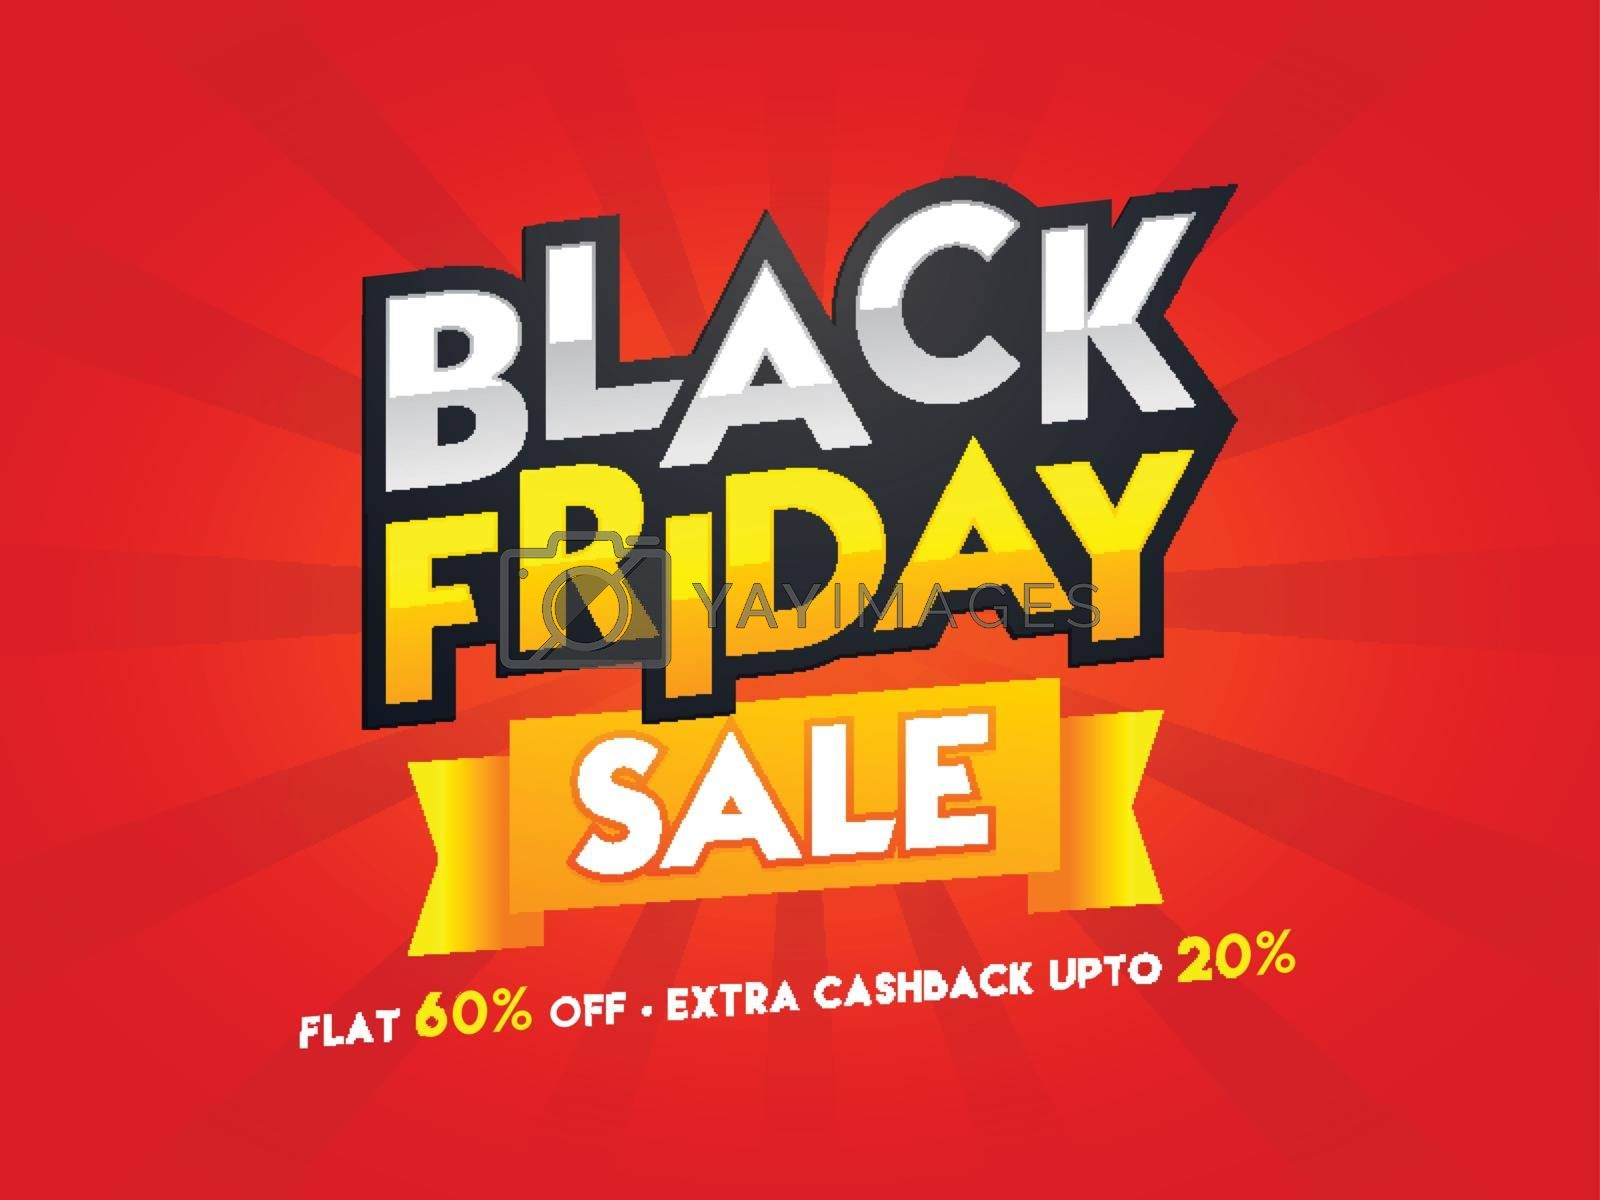 Flat 60% with extra 20% discount offer on red ray background for Black Friday Sale poster or template design.